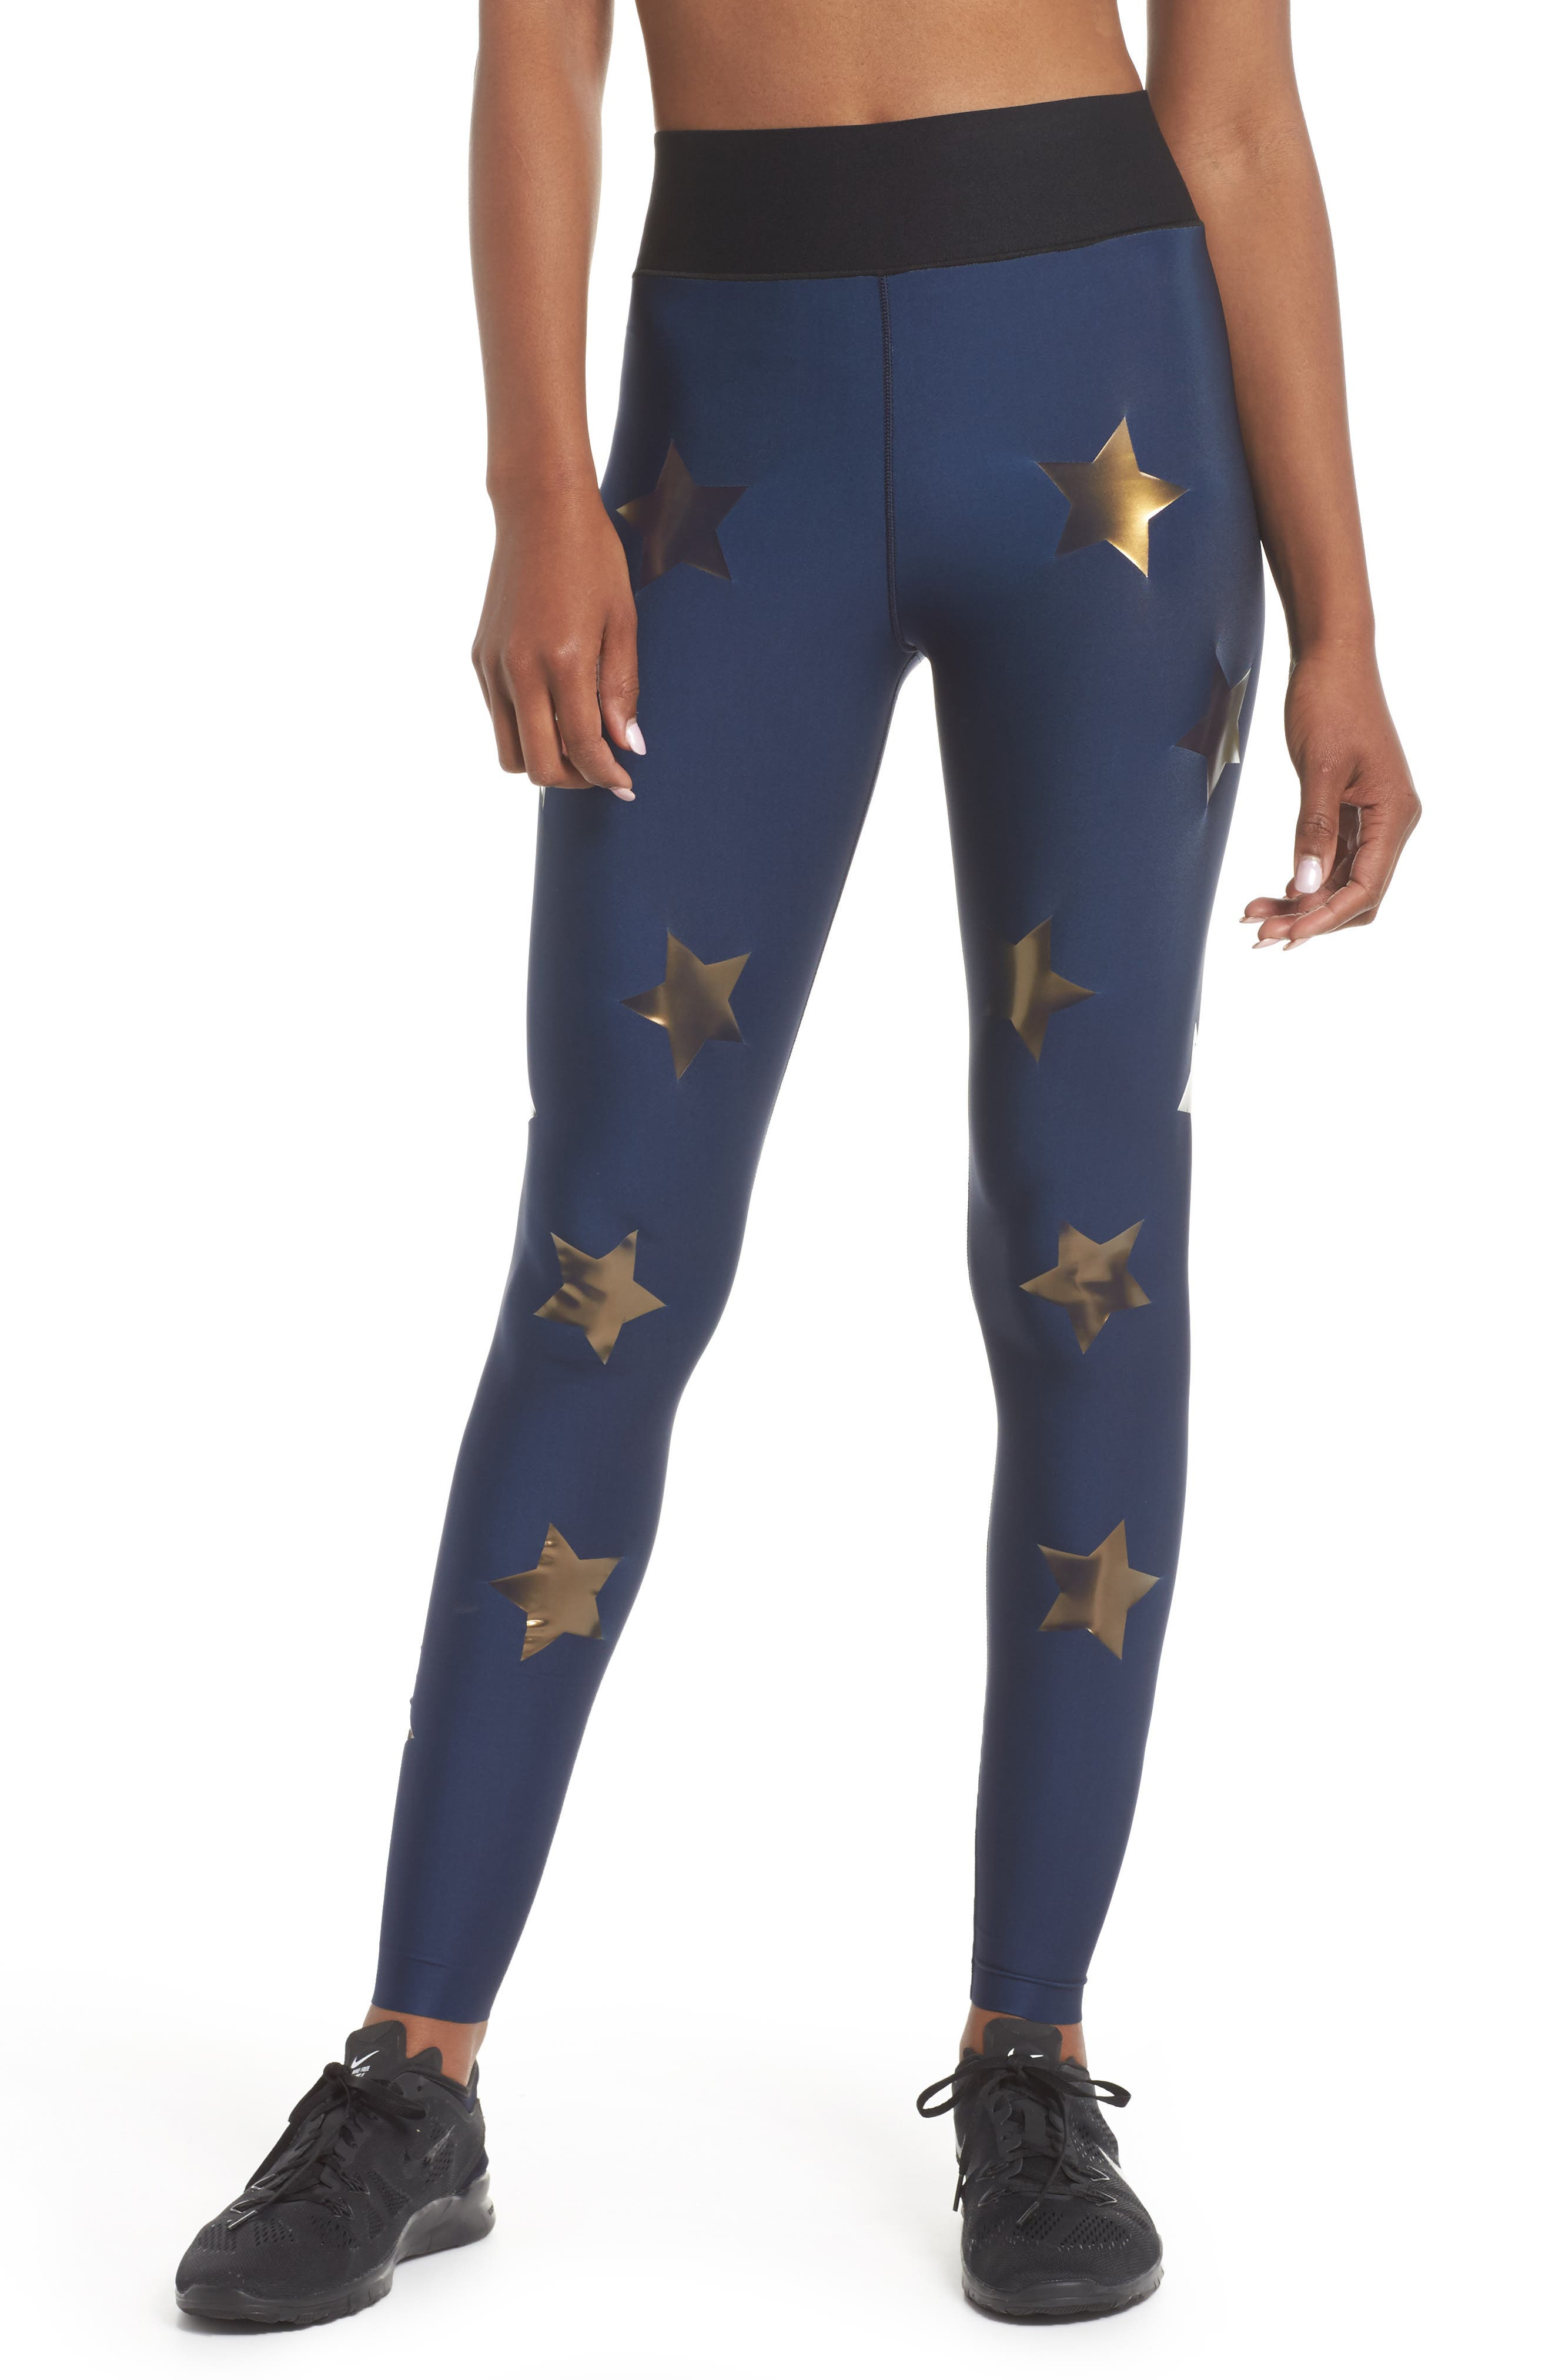 Lux Knockout Leggings,                         Main,                         color, Obig - Oxford Blue Gold